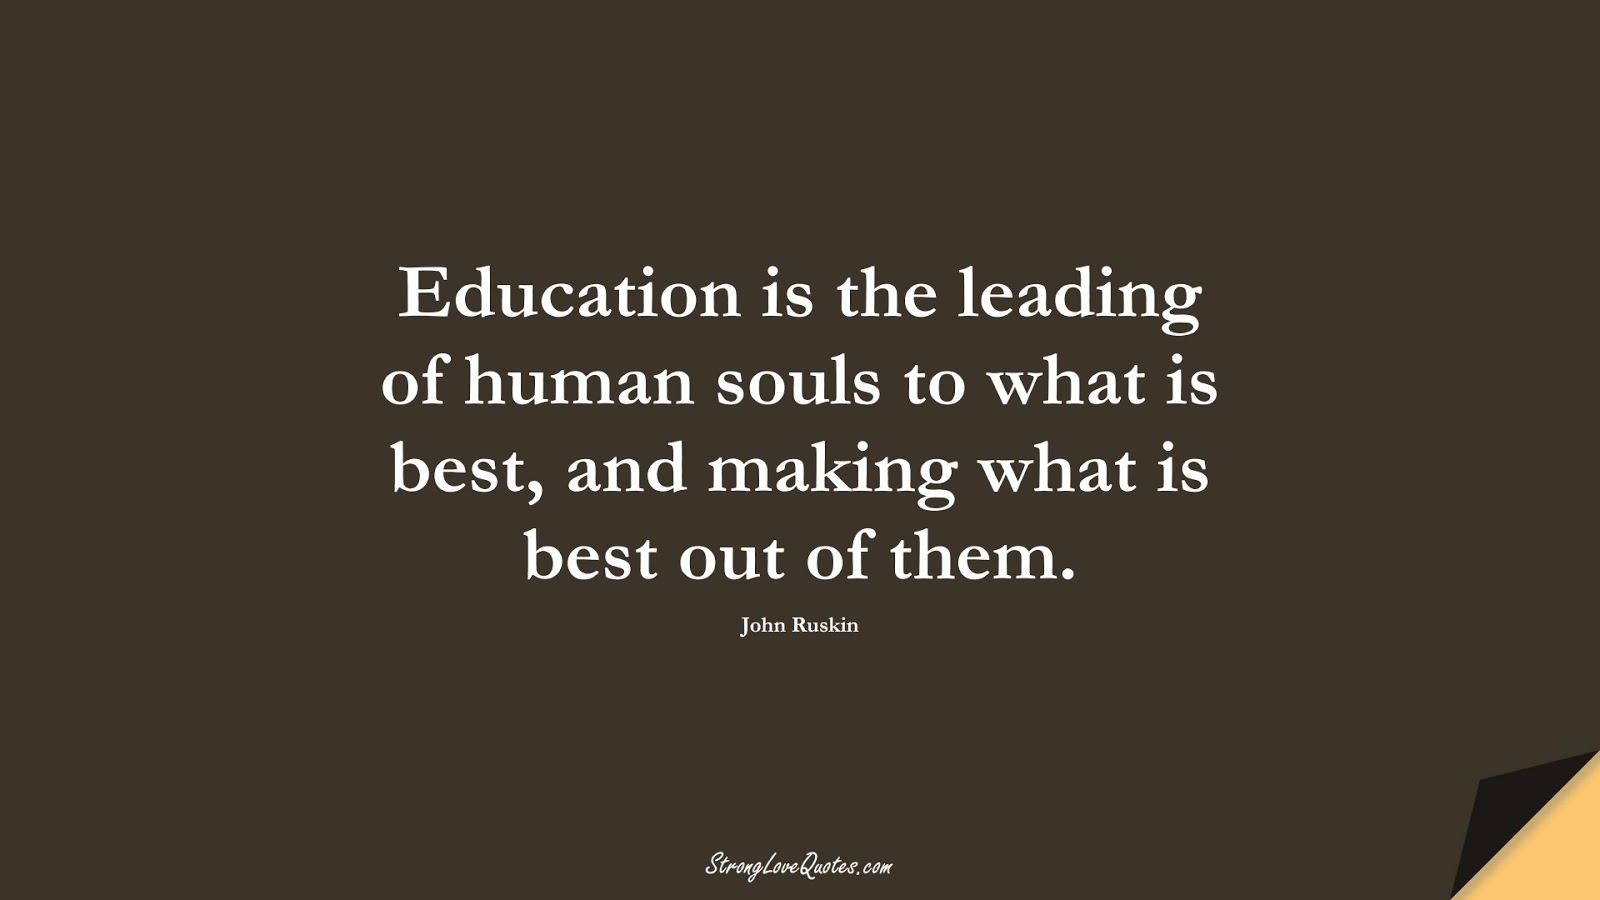 Education is the leading of human souls to what is best, and making what is best out of them. (John Ruskin);  #EducationQuotes